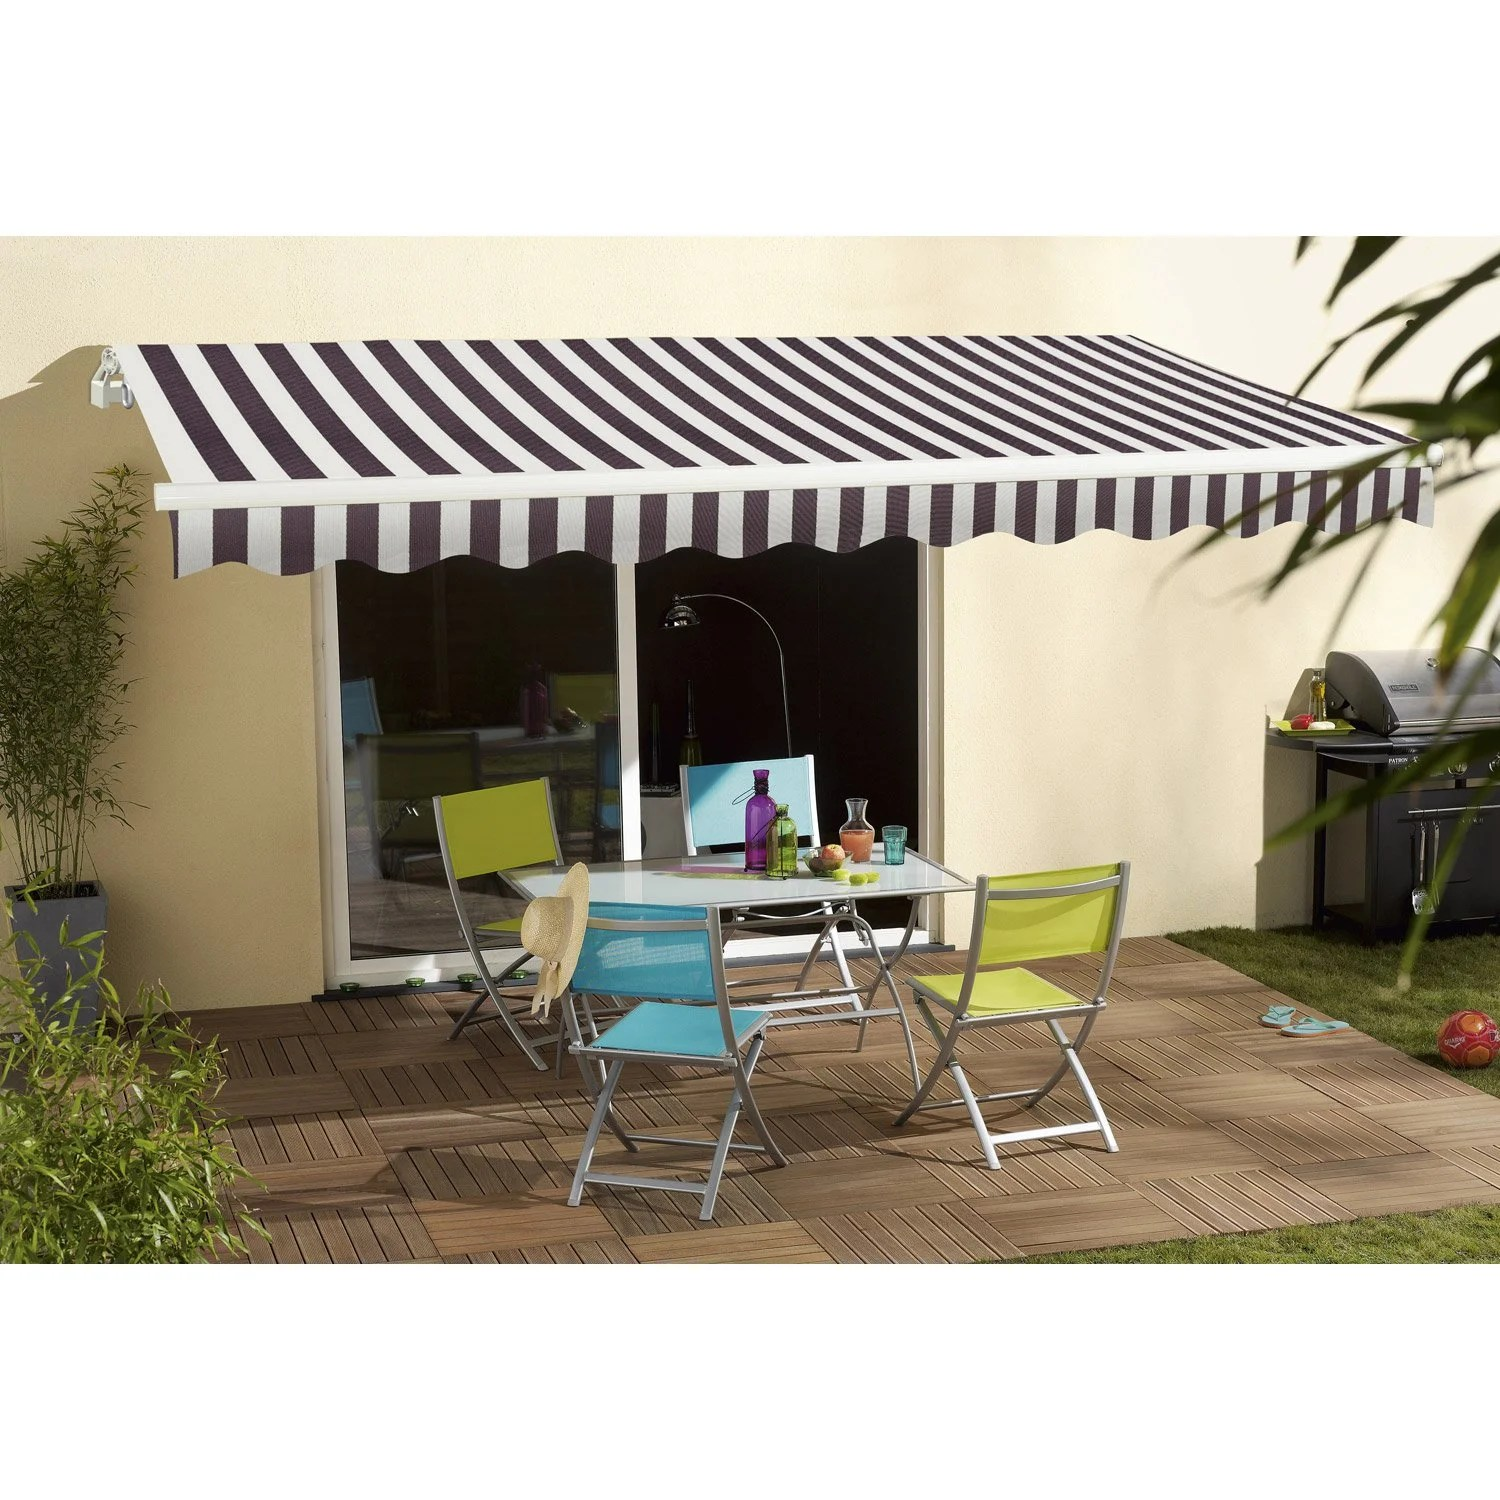 Store Banne Coffre Allure Store Banne Electrique Store Terrasse Leroy Merlin Store Store